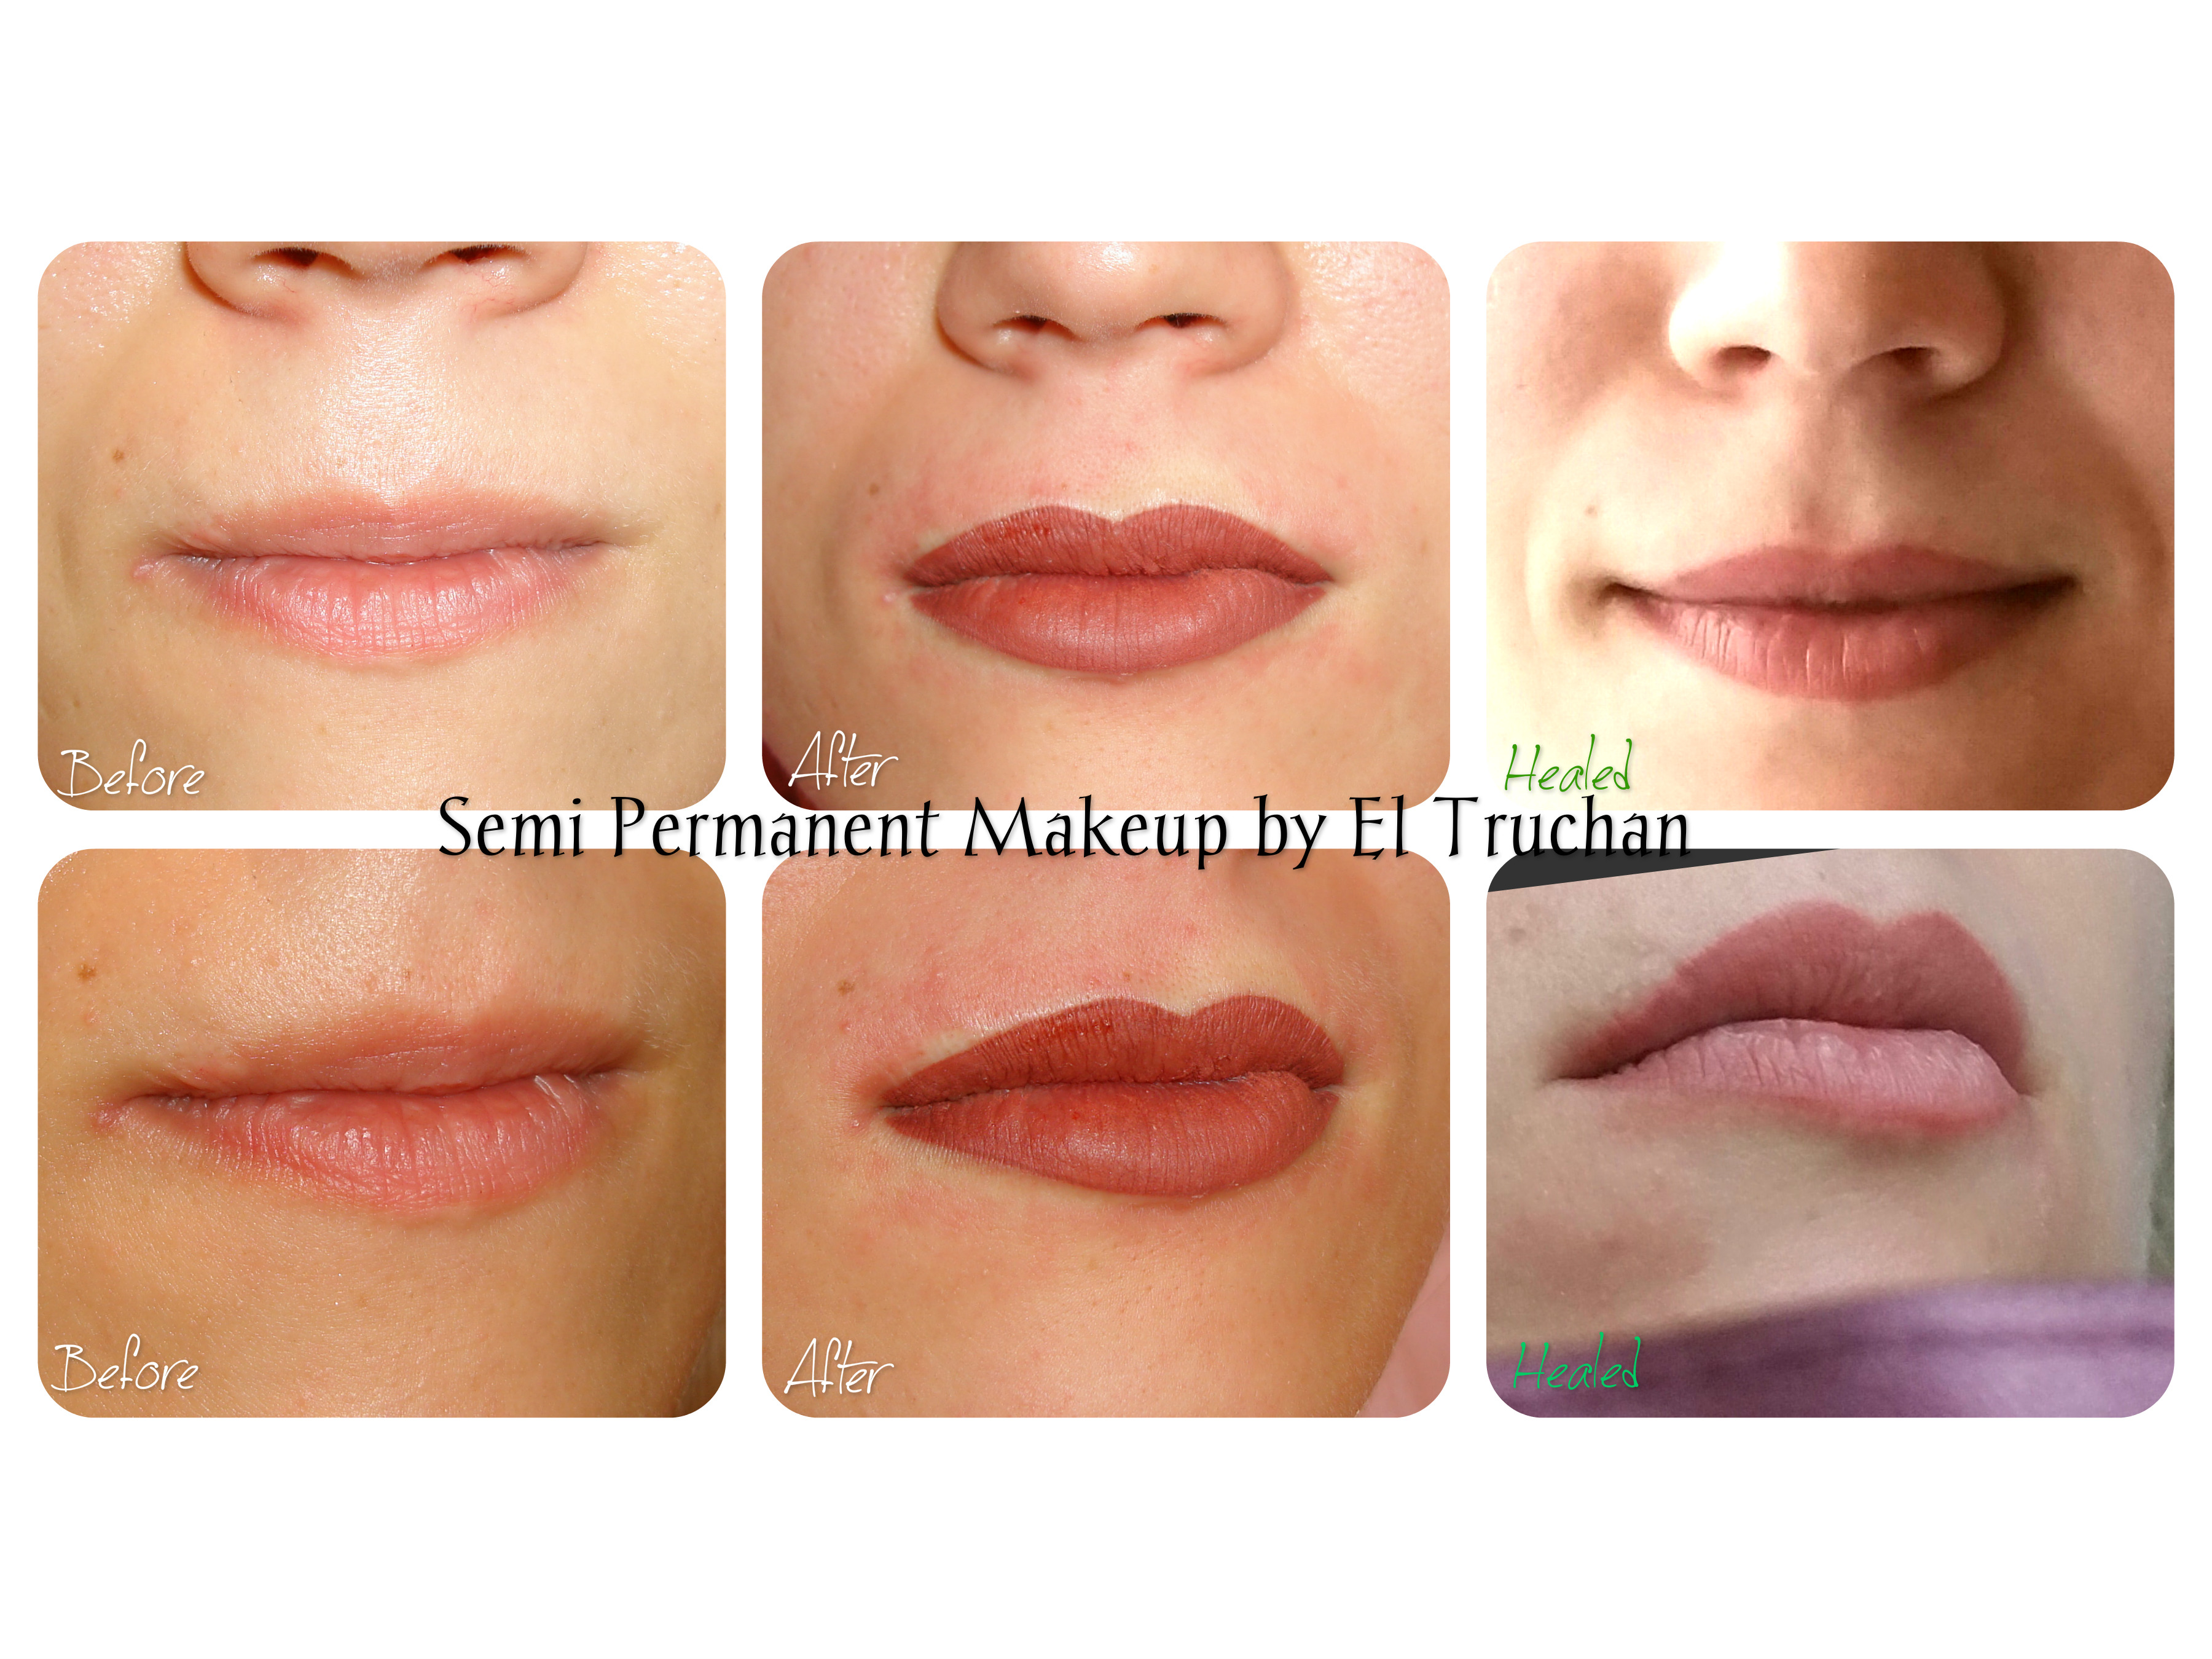 Semi Permanent Makeup by El Truchan Lip Scar